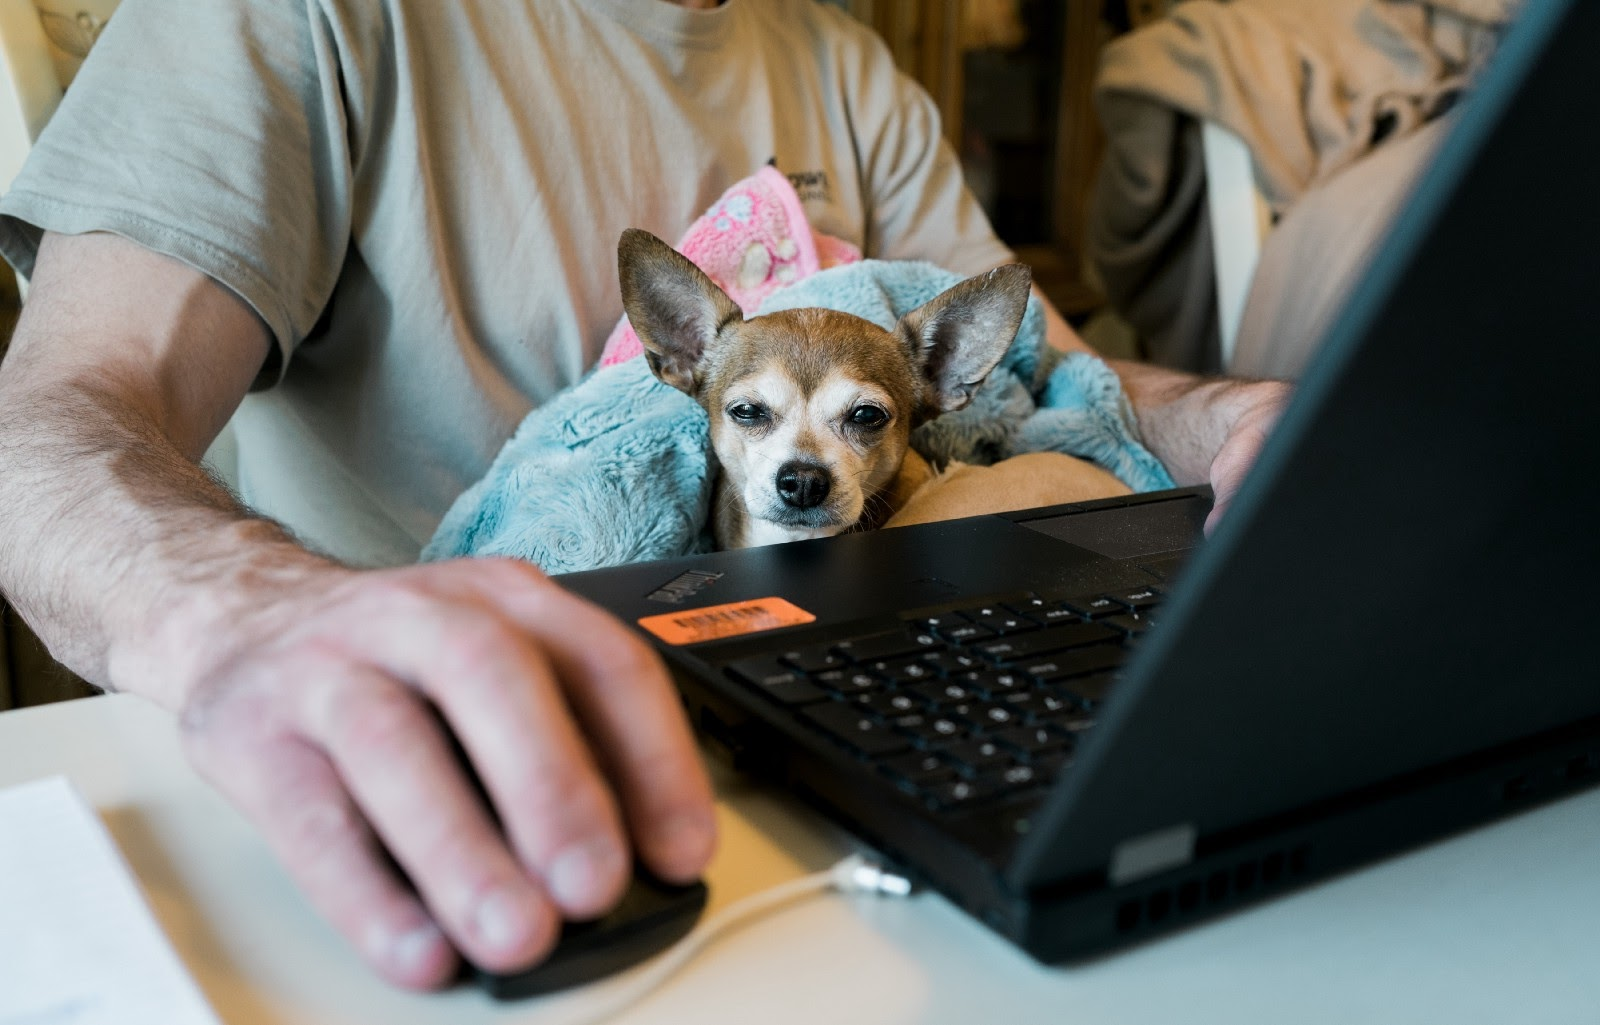 Person holding a dog while using a laptop. Photo by Allie on Unsplash.